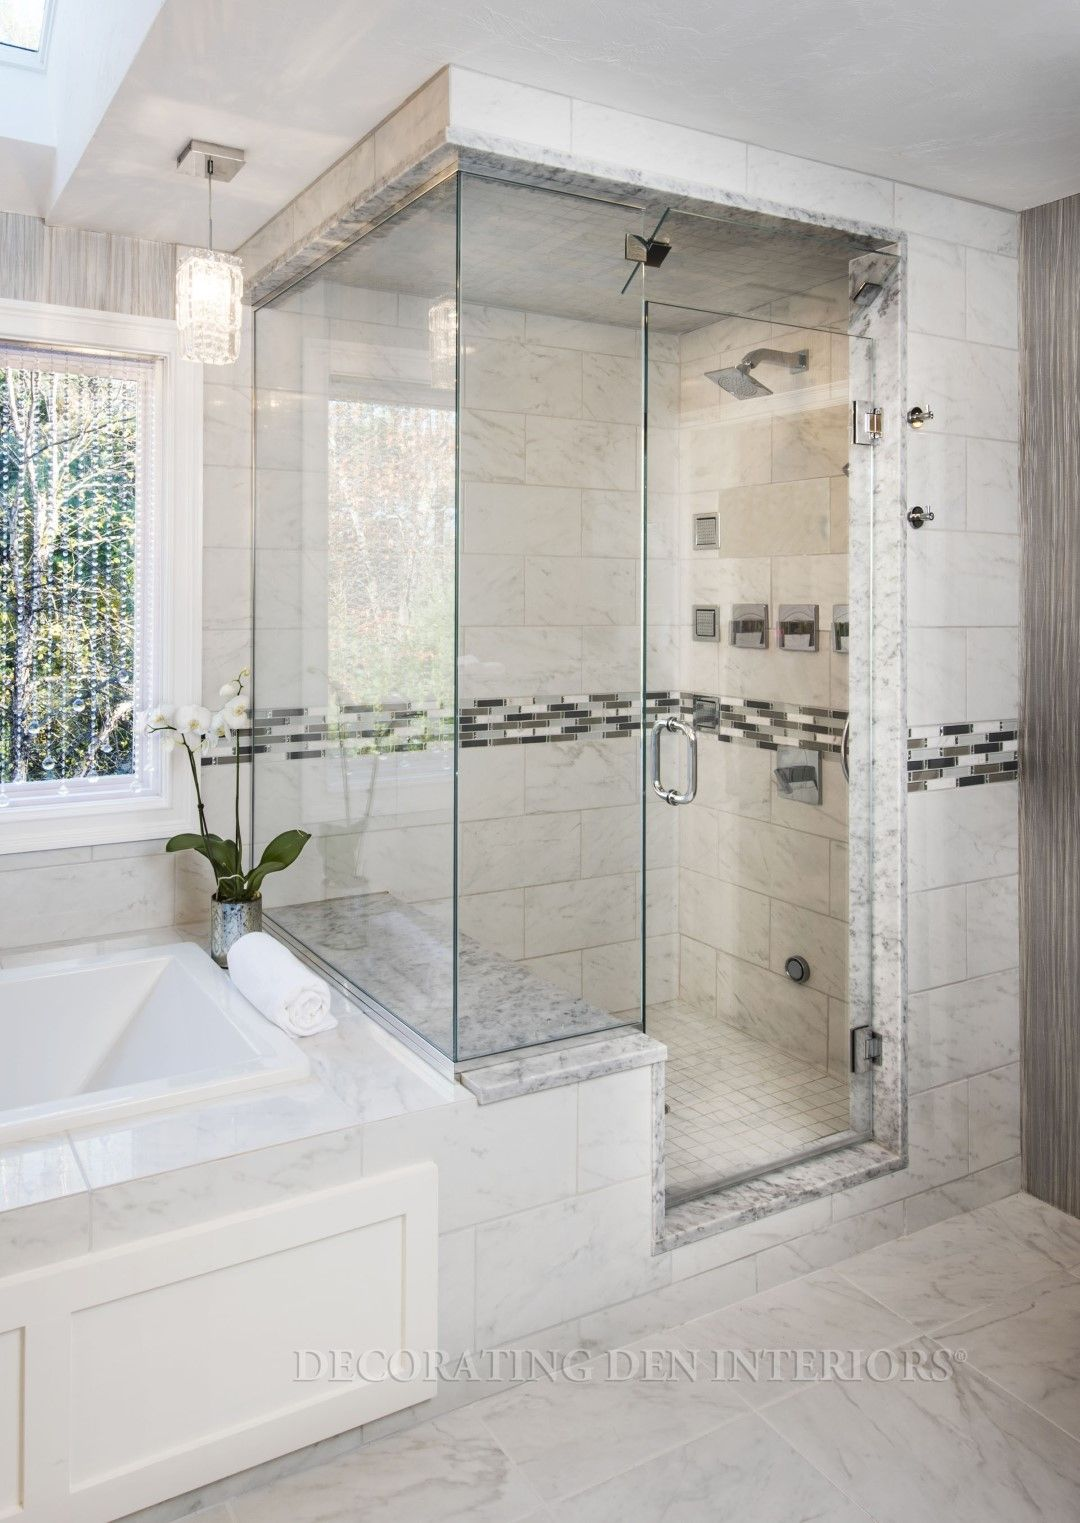 Beautiful Bathroom Designs By Decorating Den Interiors. Want This Look?  Call Decorating Den Interiors By Julie Ann To Set Up Your FREE Consultation  ...